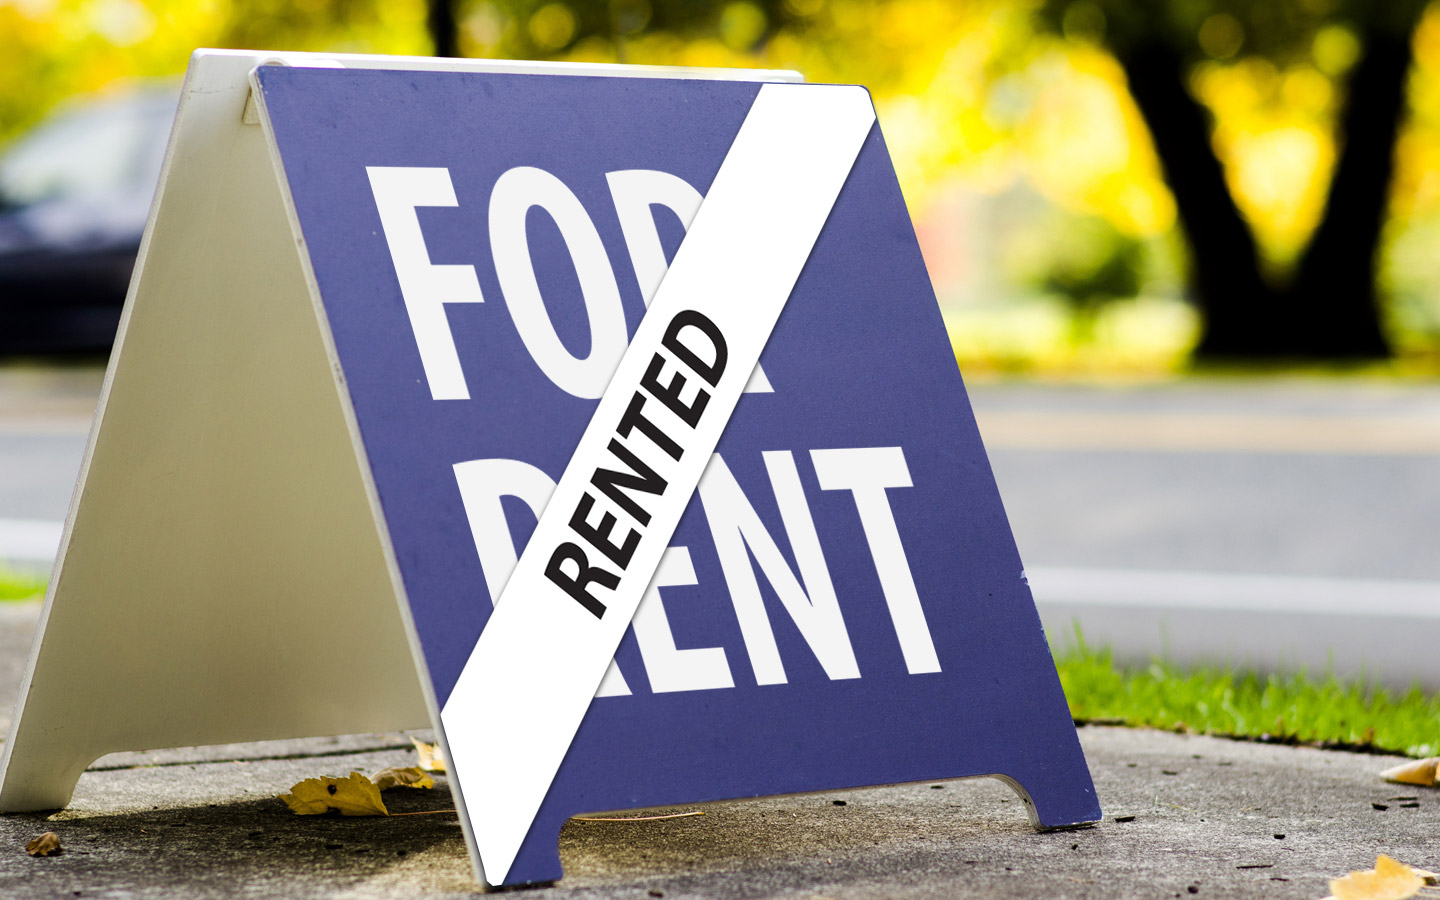 for rent signboard and rented sign on top